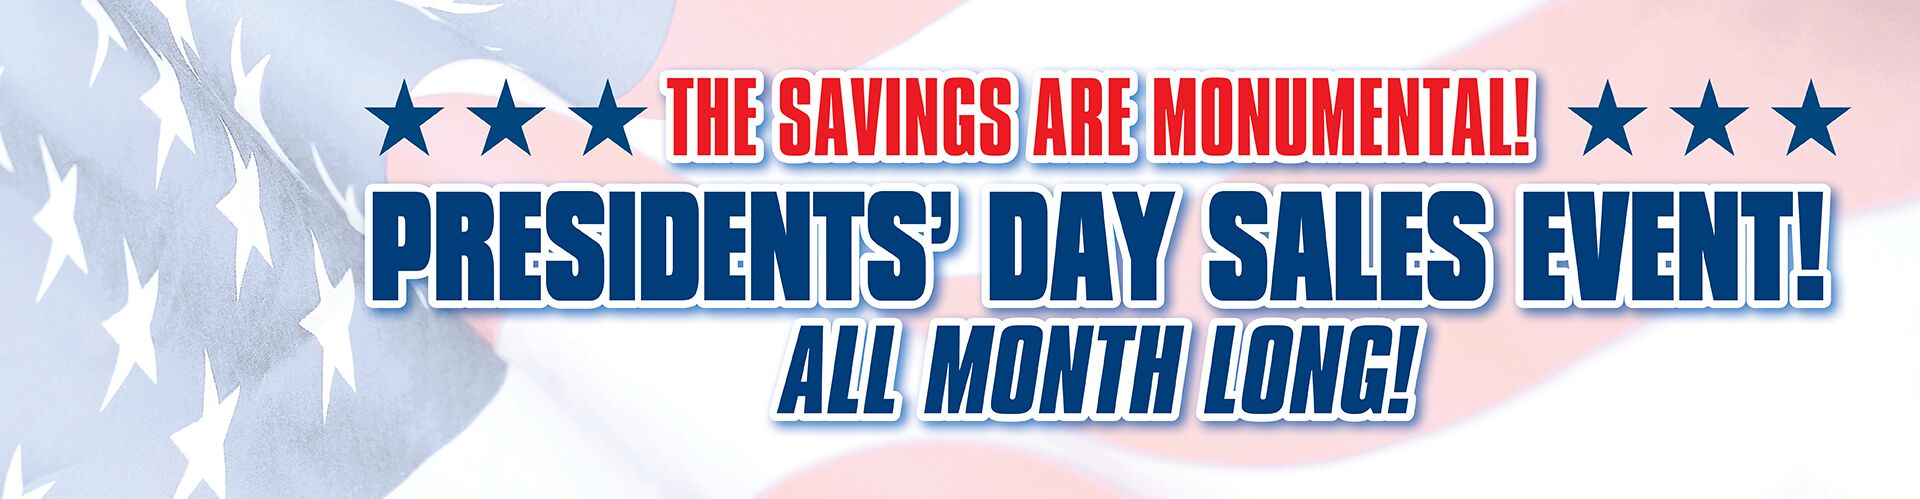 It's The Presidents' Day Sales Event!